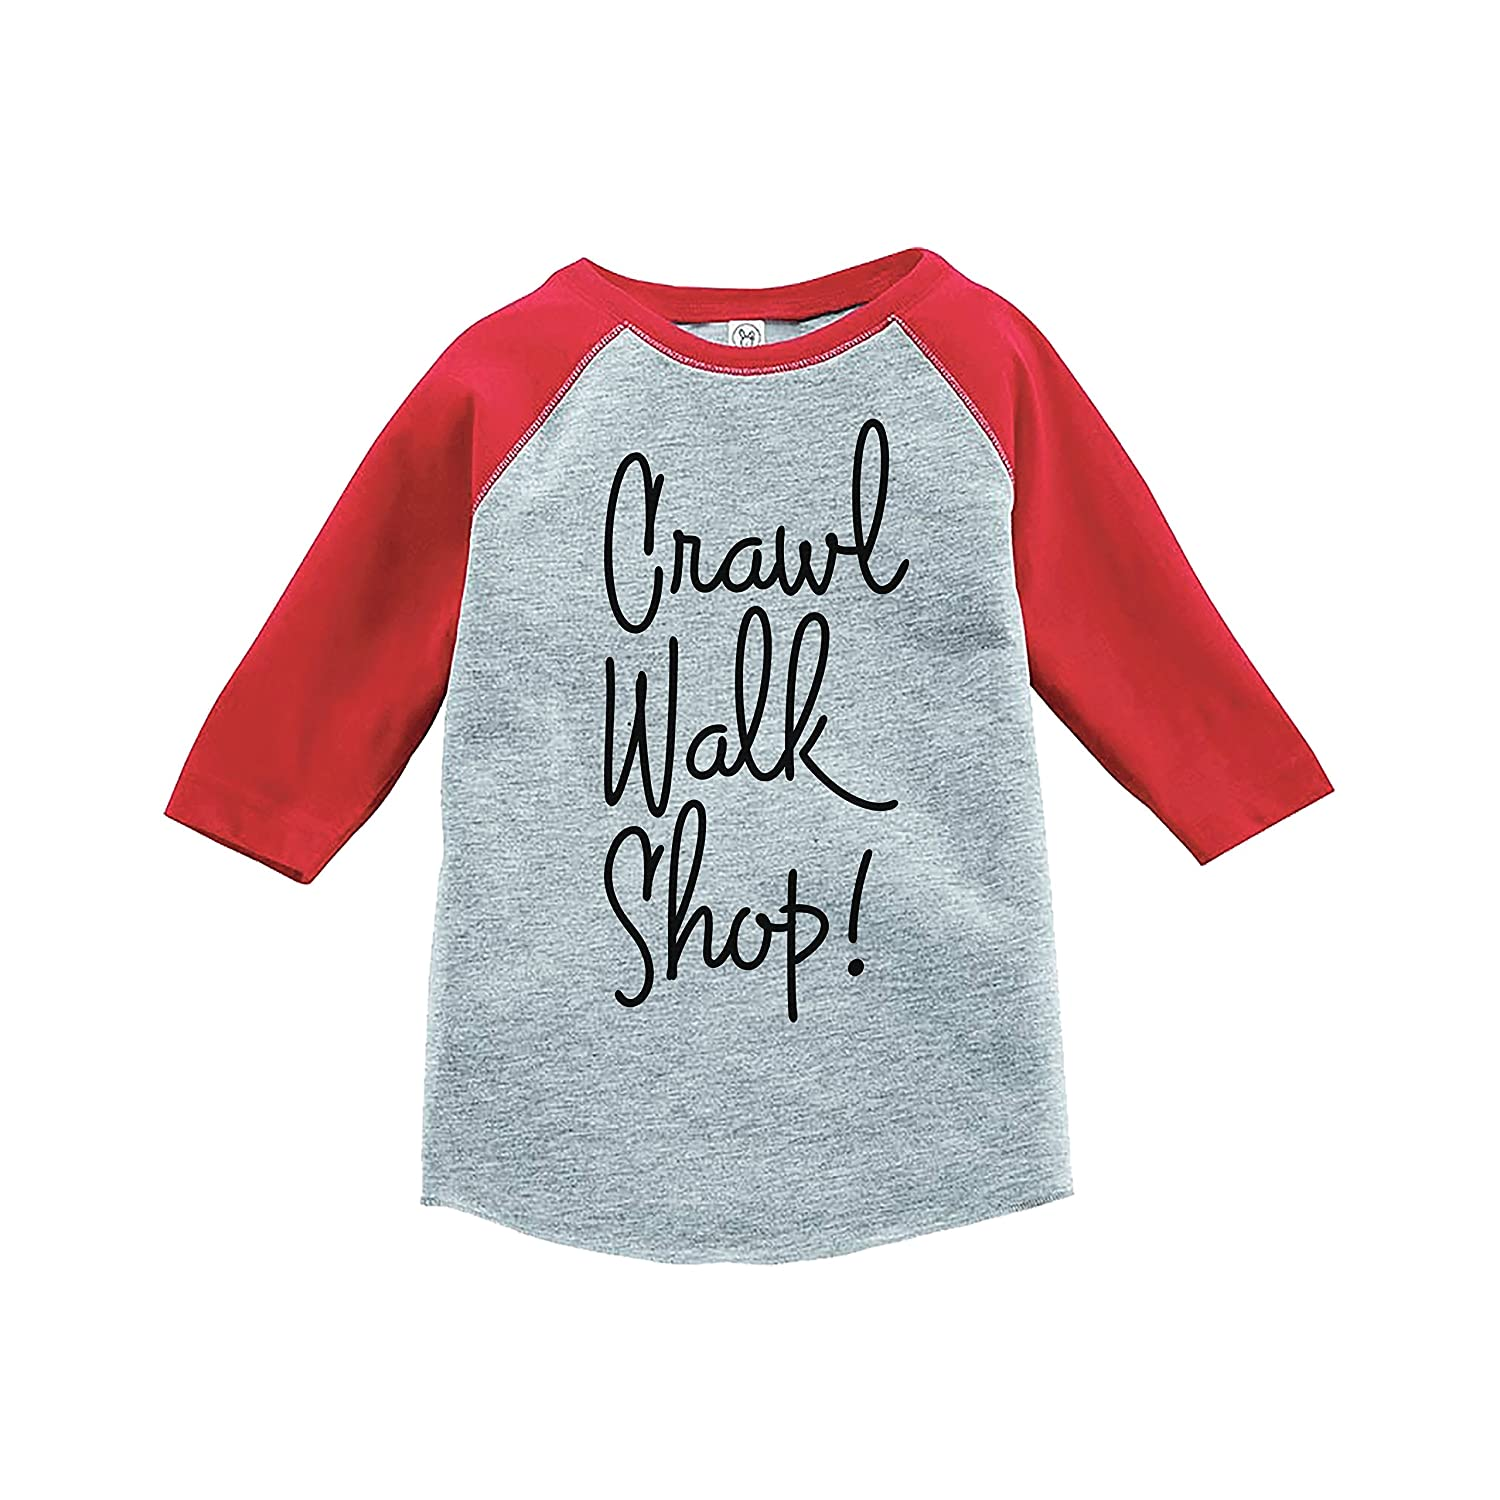 7 ate 9 Apparel Kids Crawl Walk Shop Red Baseball Tee